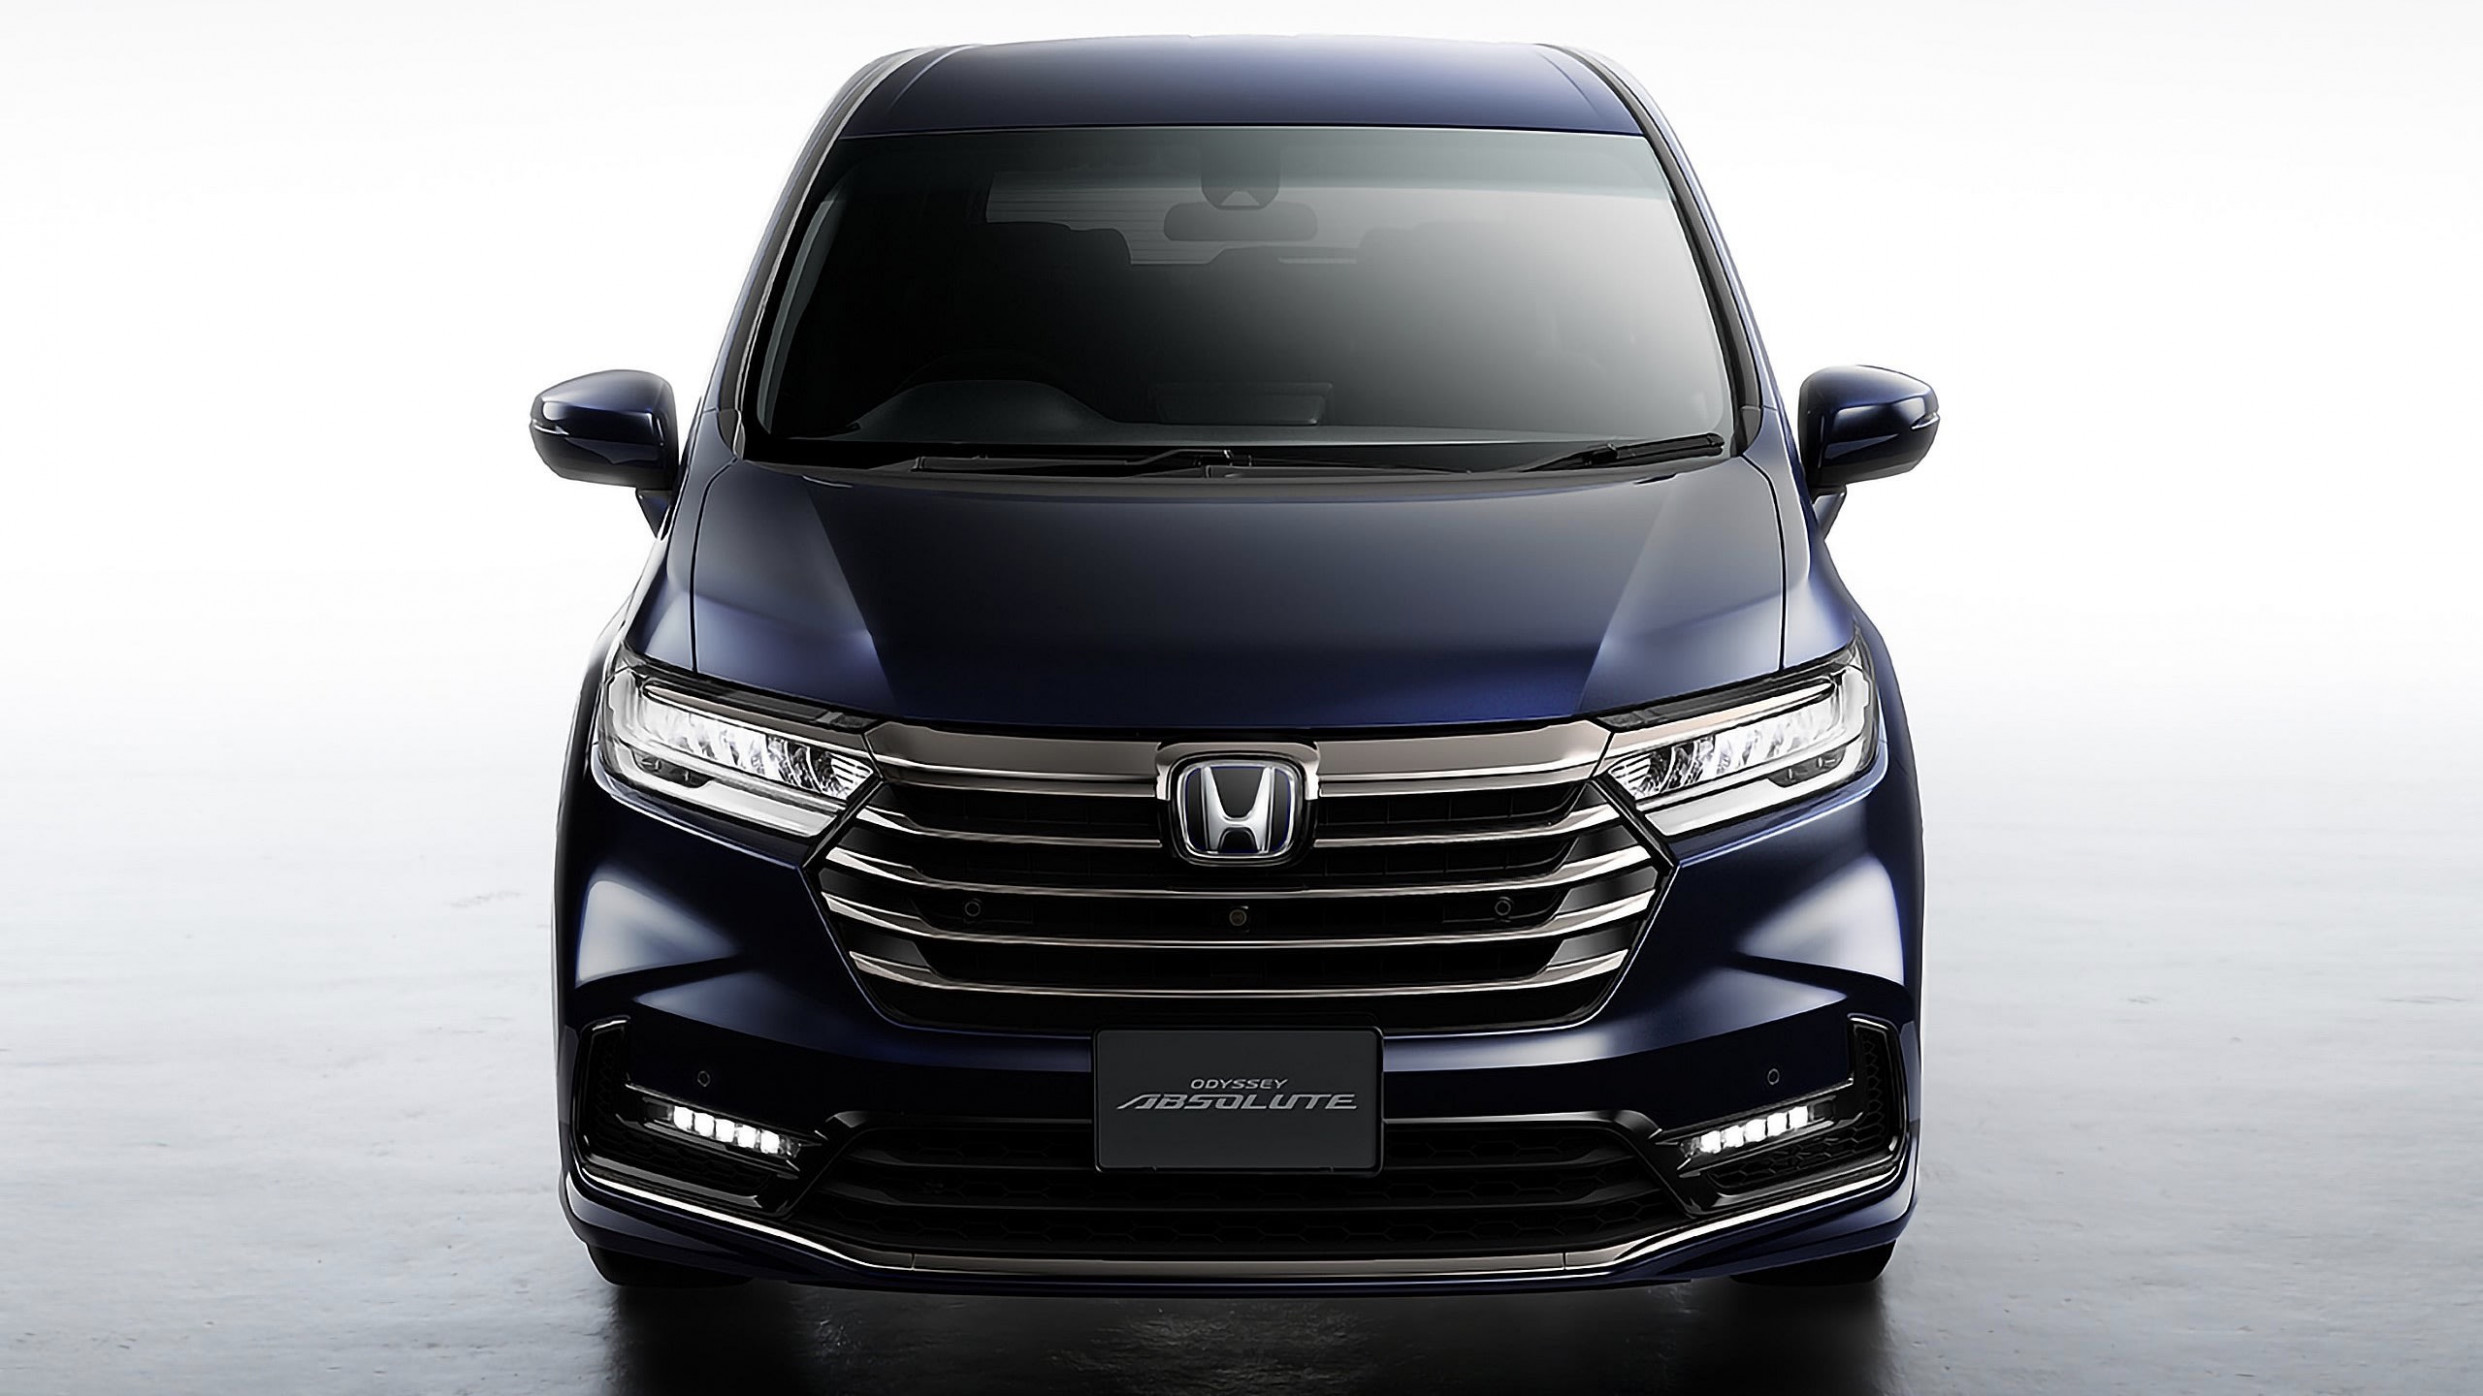 Price When Does 2022 Honda Odyssey Come Out